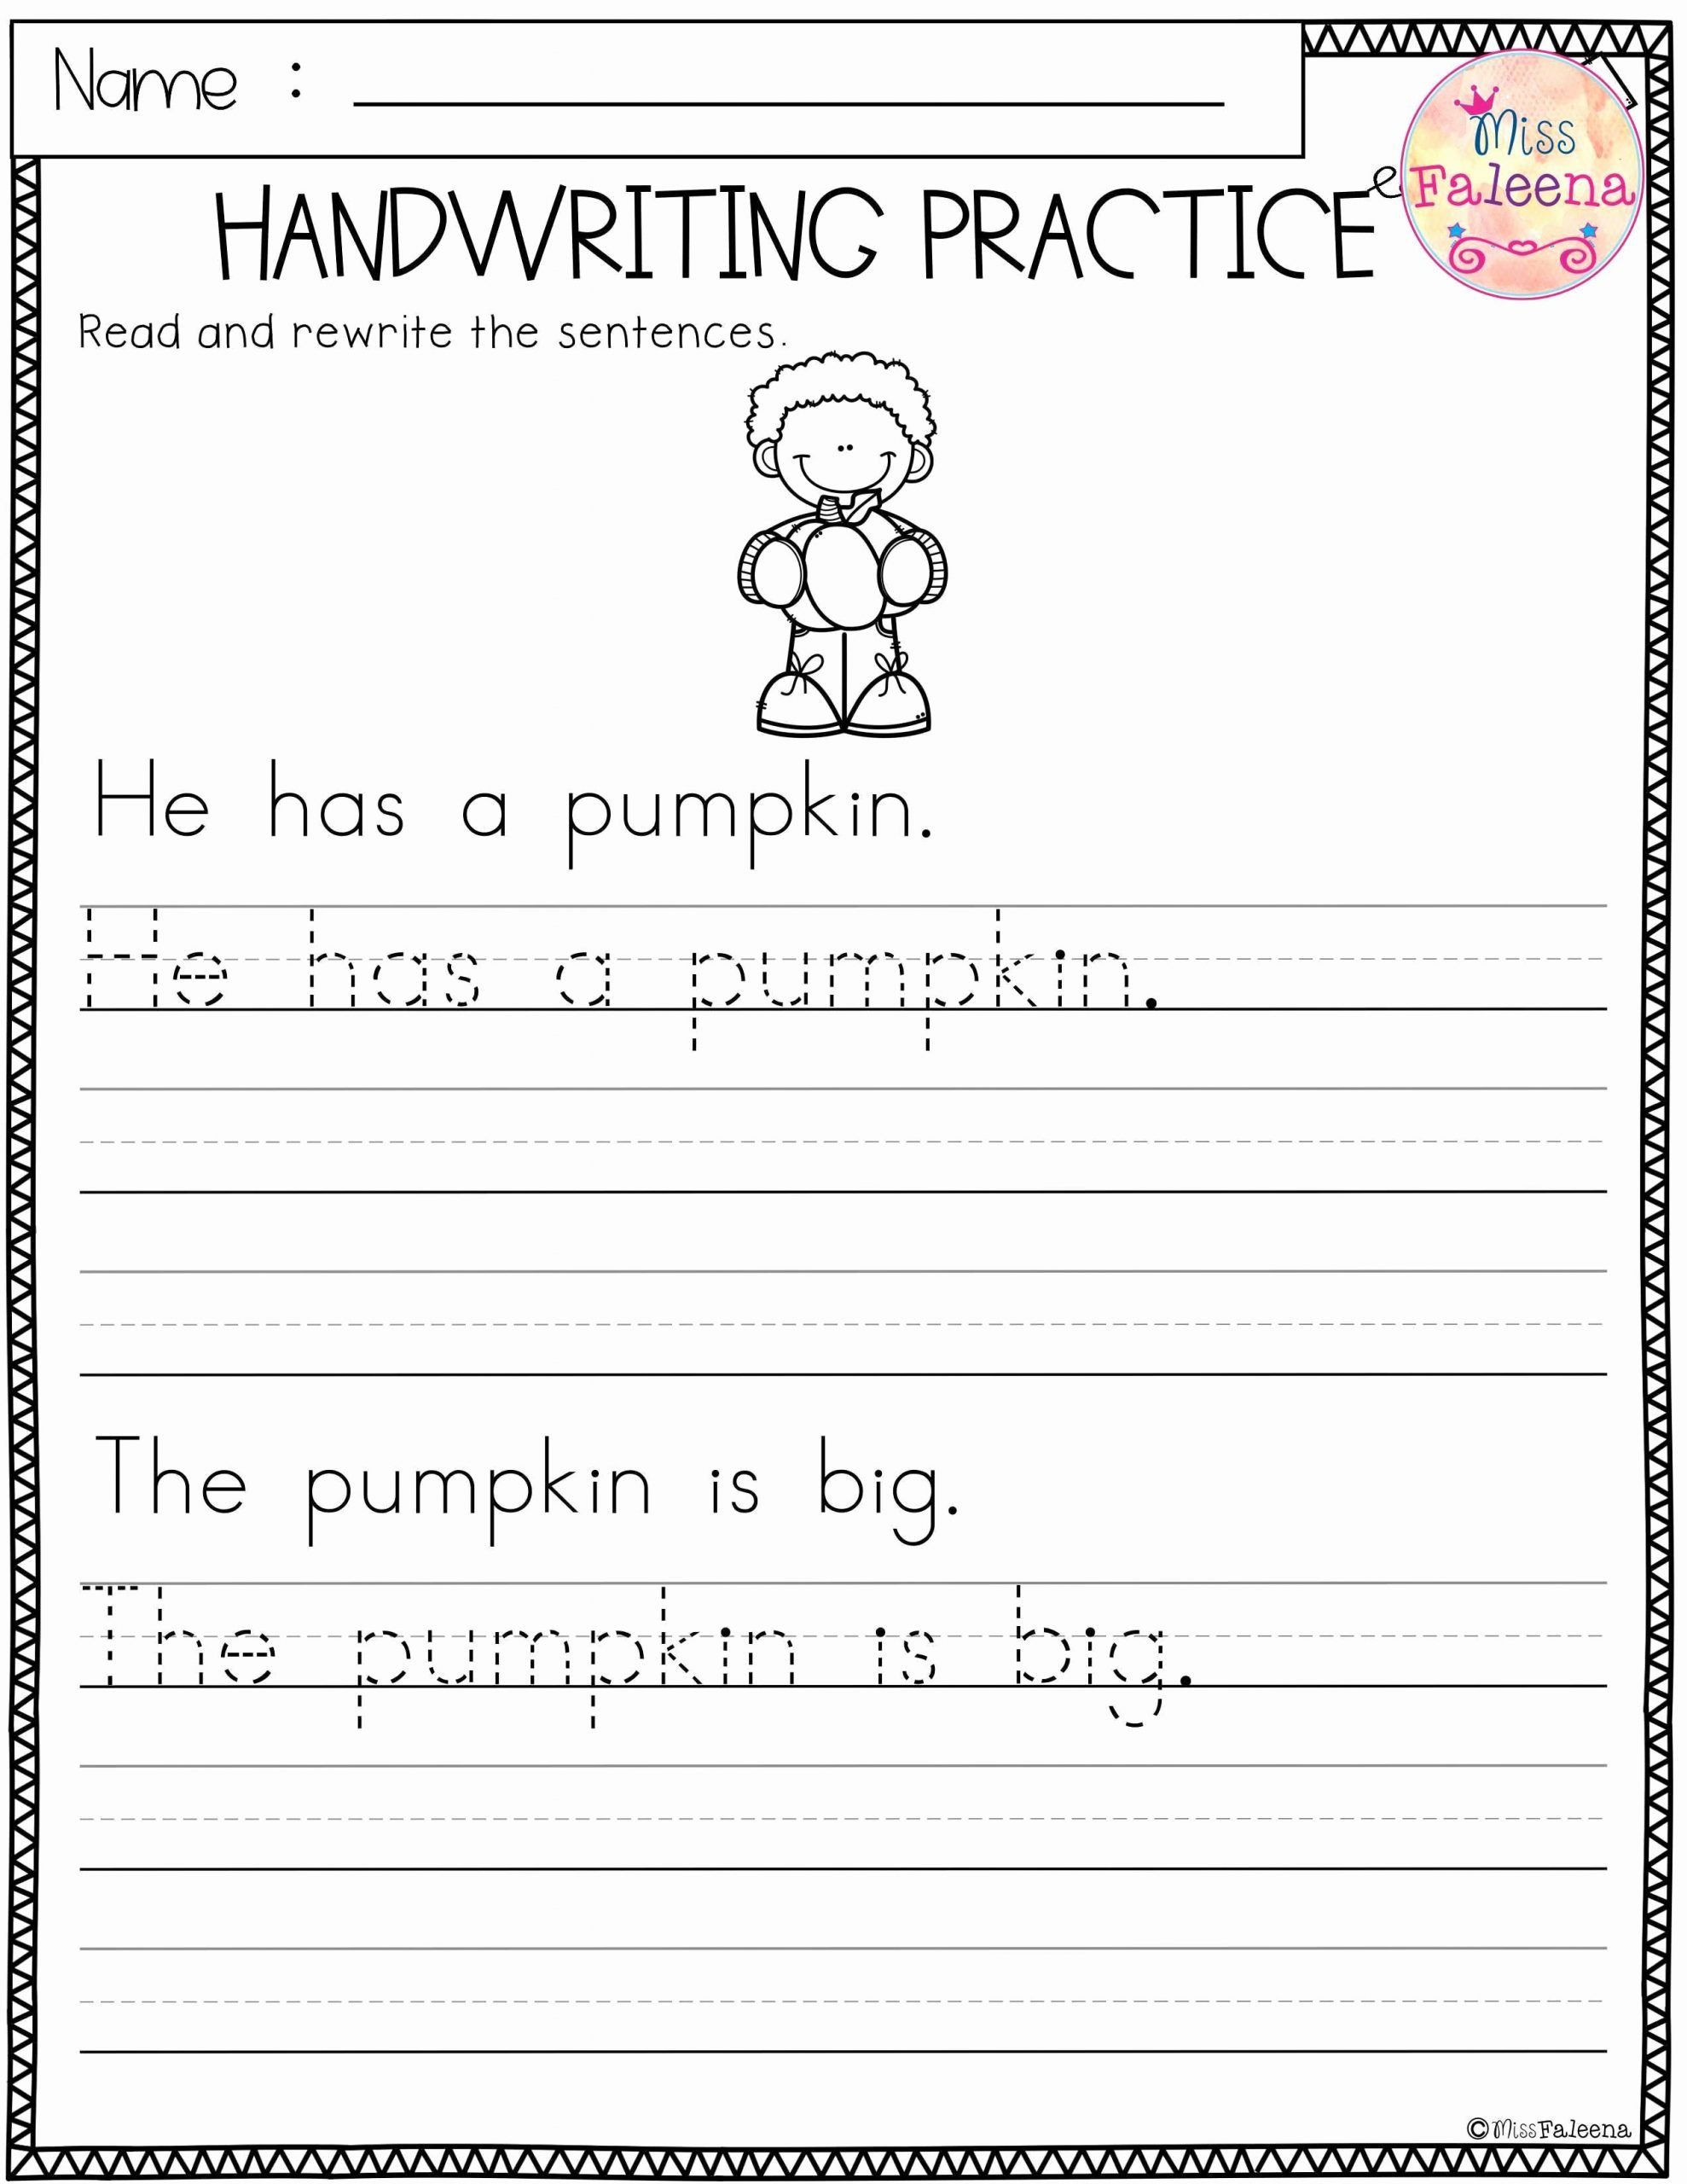 Practice Handwriting Worksheets for Preschoolers Inspirational Free Handwriting Practice This Product Has 5 Pages Of